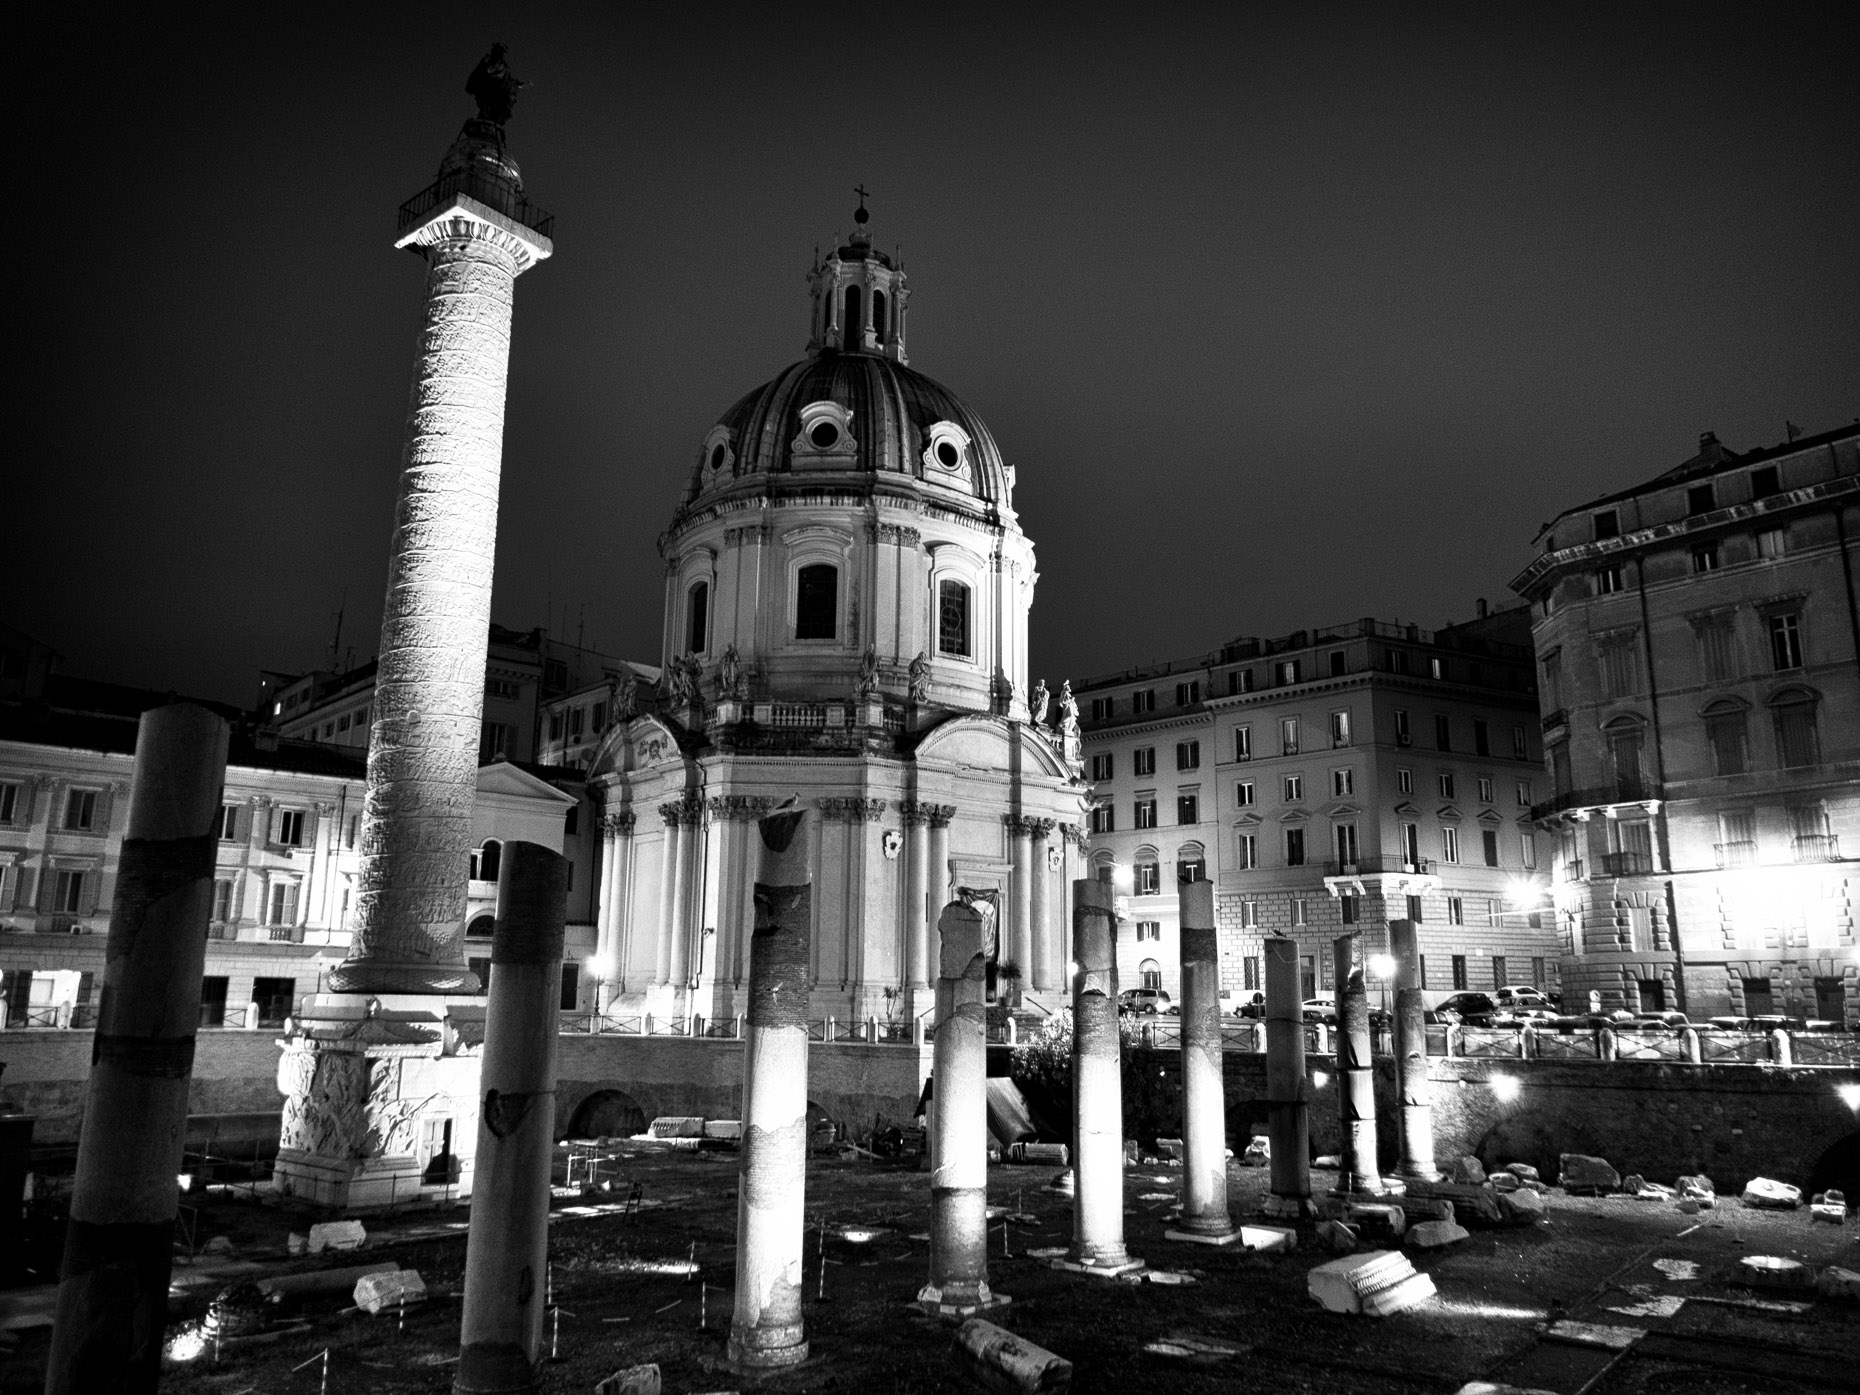 Rome after hours